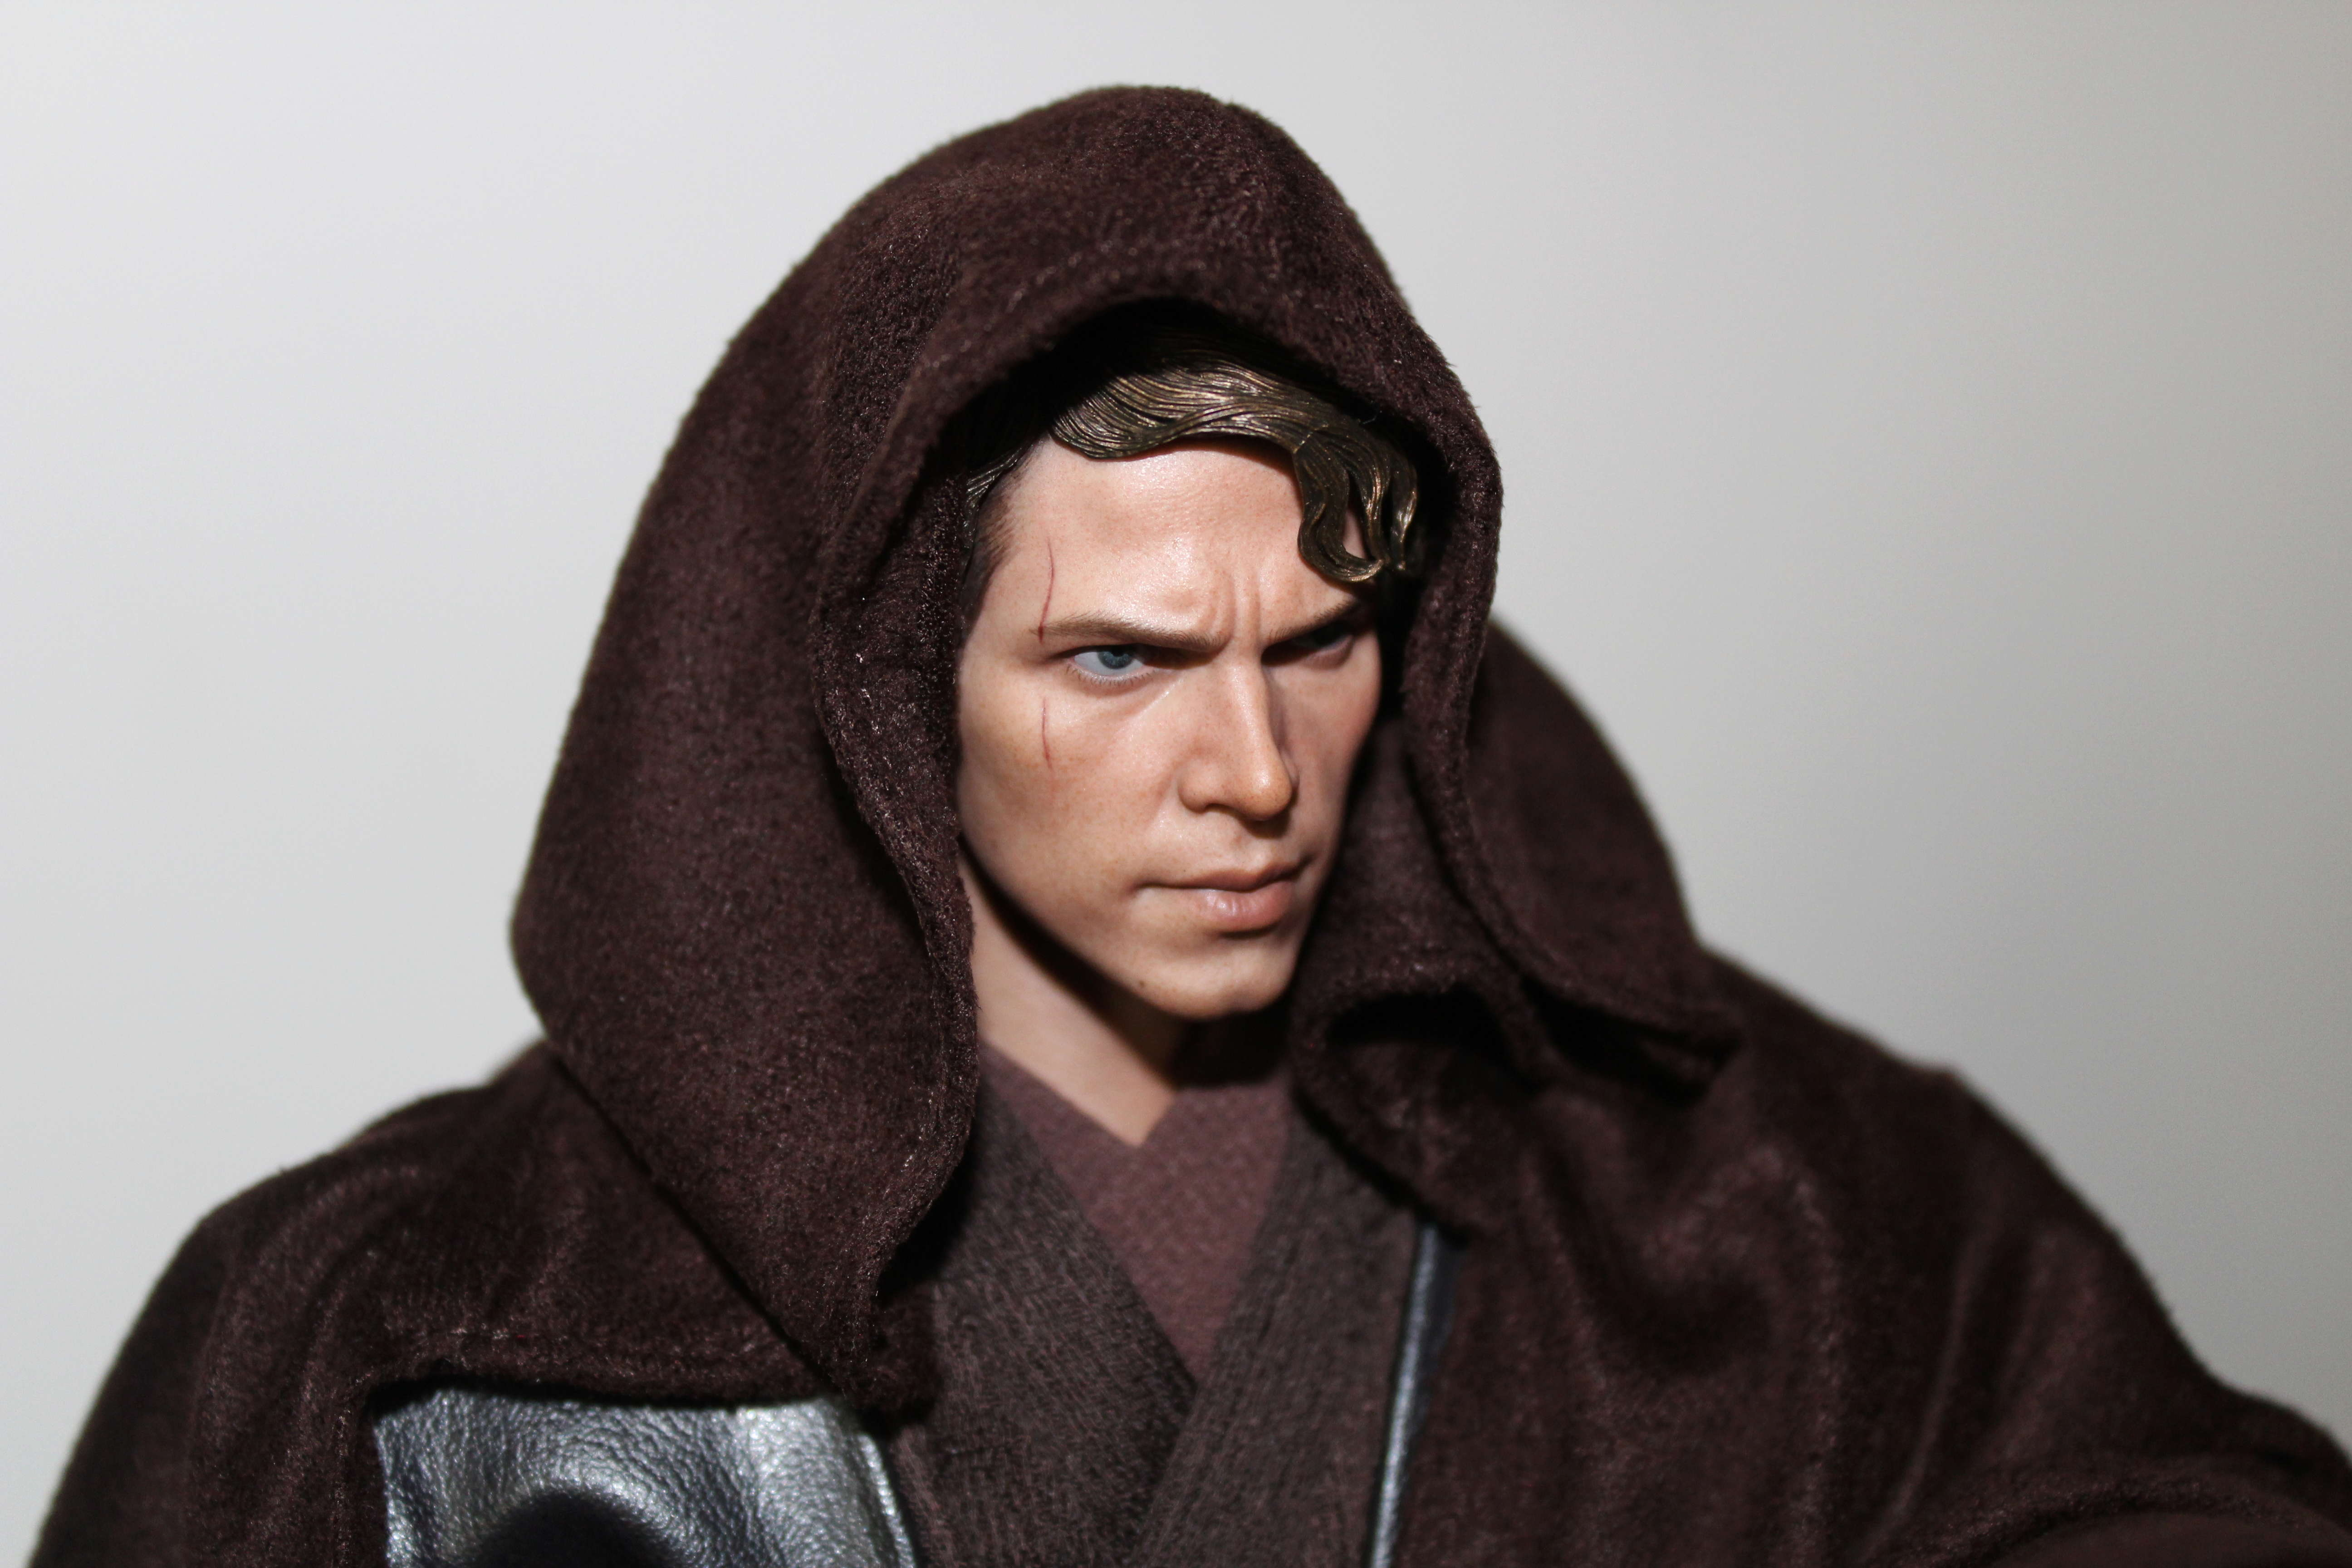 MMS???: STAR WARS - REVENGE OF THE SITH- ANAKIN SKYWALKER - Page 4 Img_2812